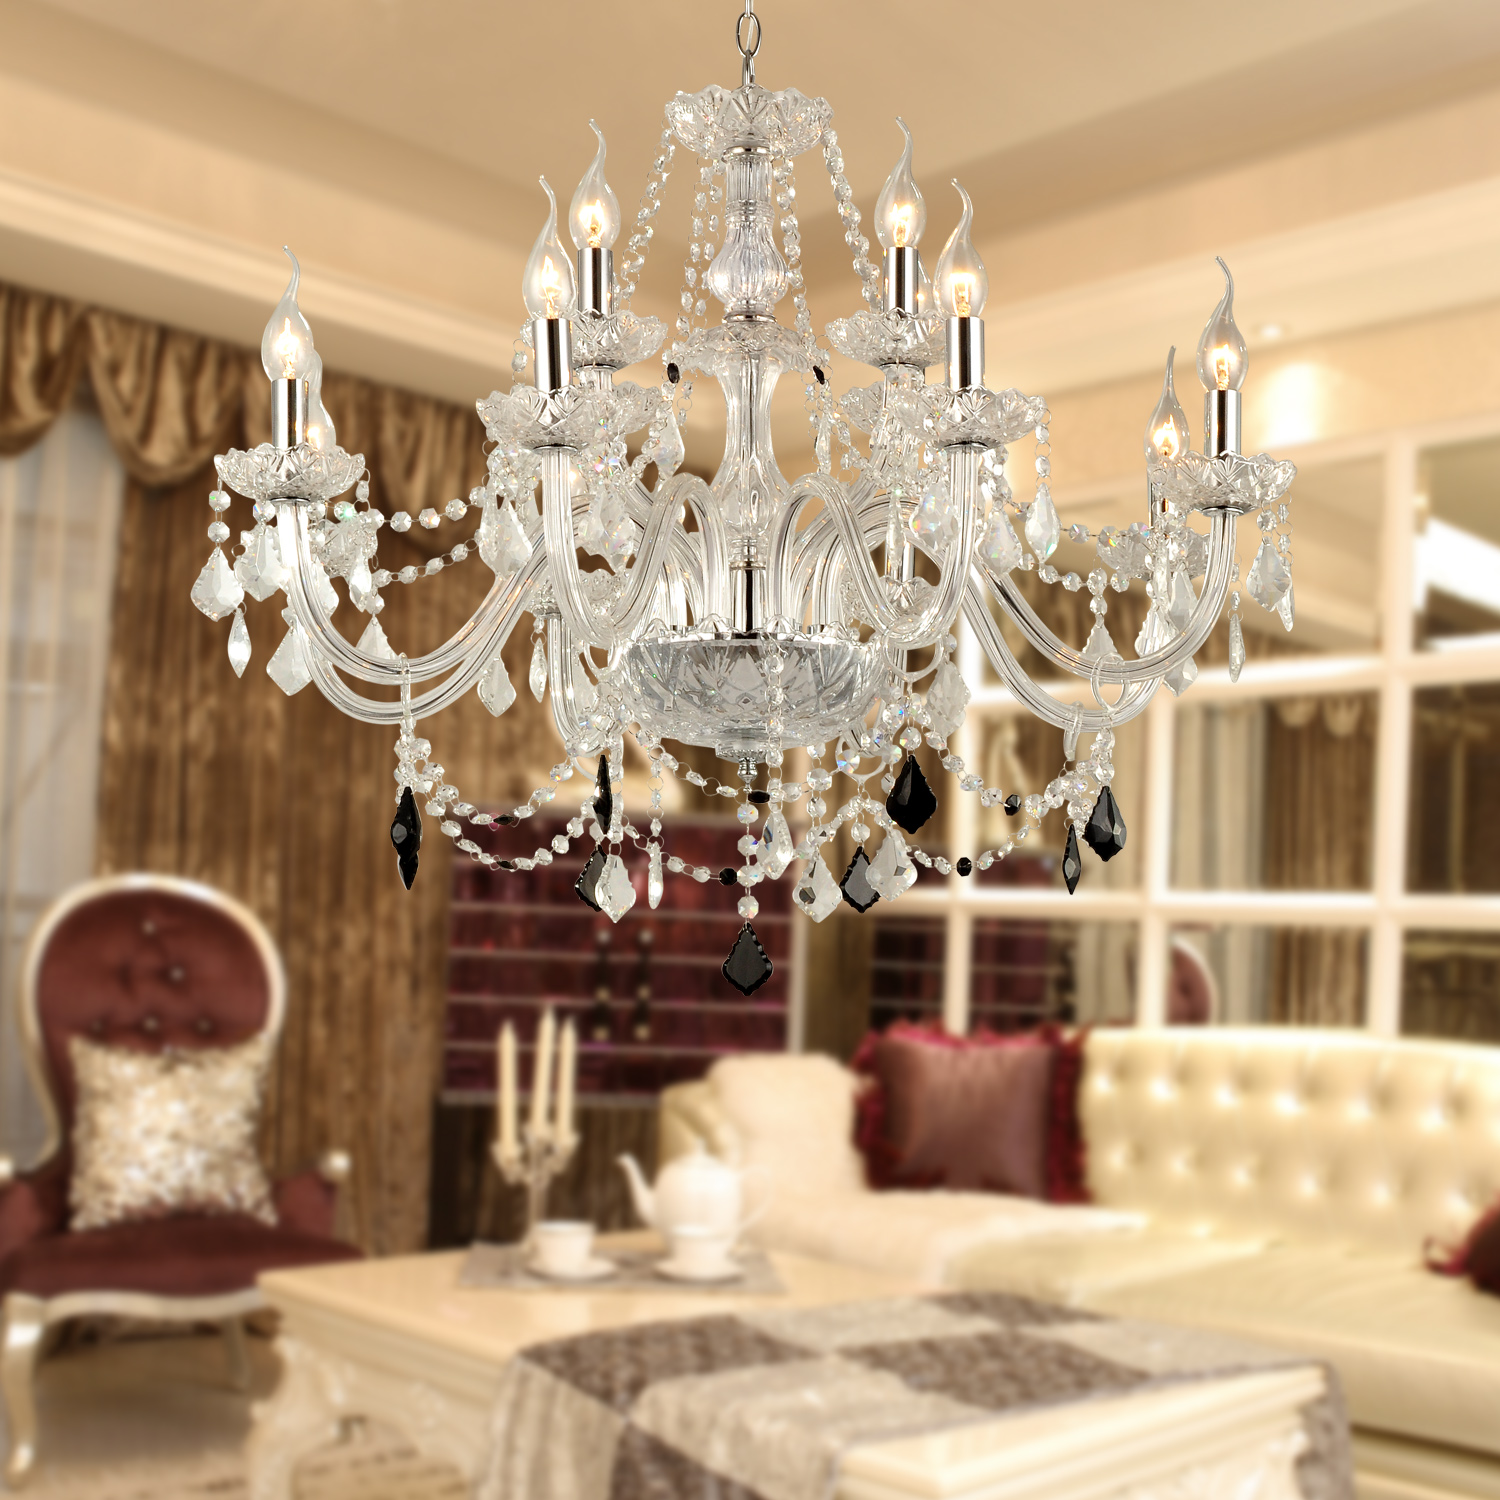 Glass Chandeliers For Dining Room: Rustic Luxury Crystal Glass Chandelier Light Pendant